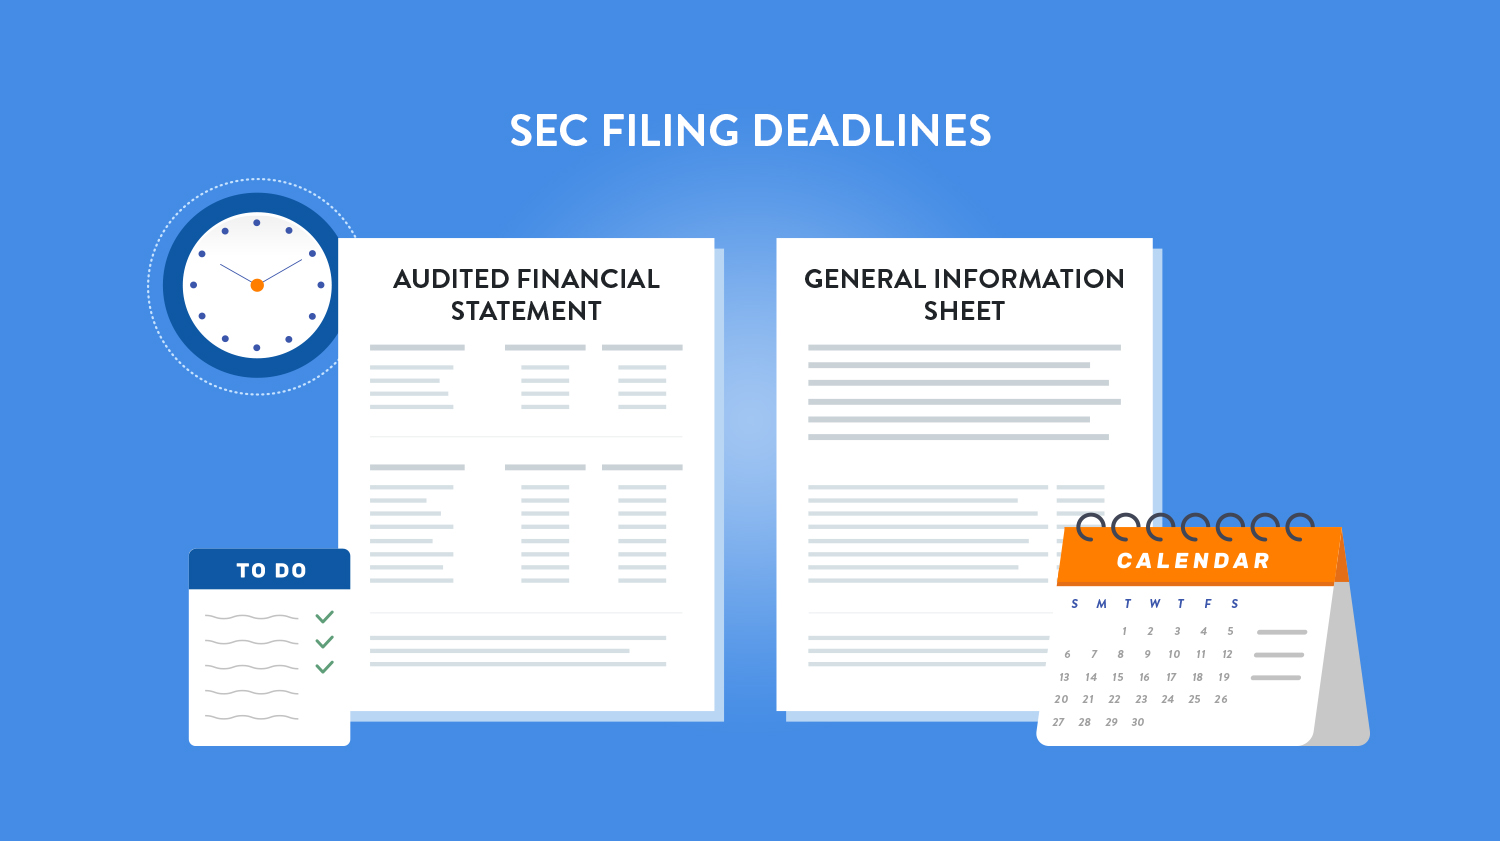 SEC deadlines are coming: File your AFS and GIS on time in 2019